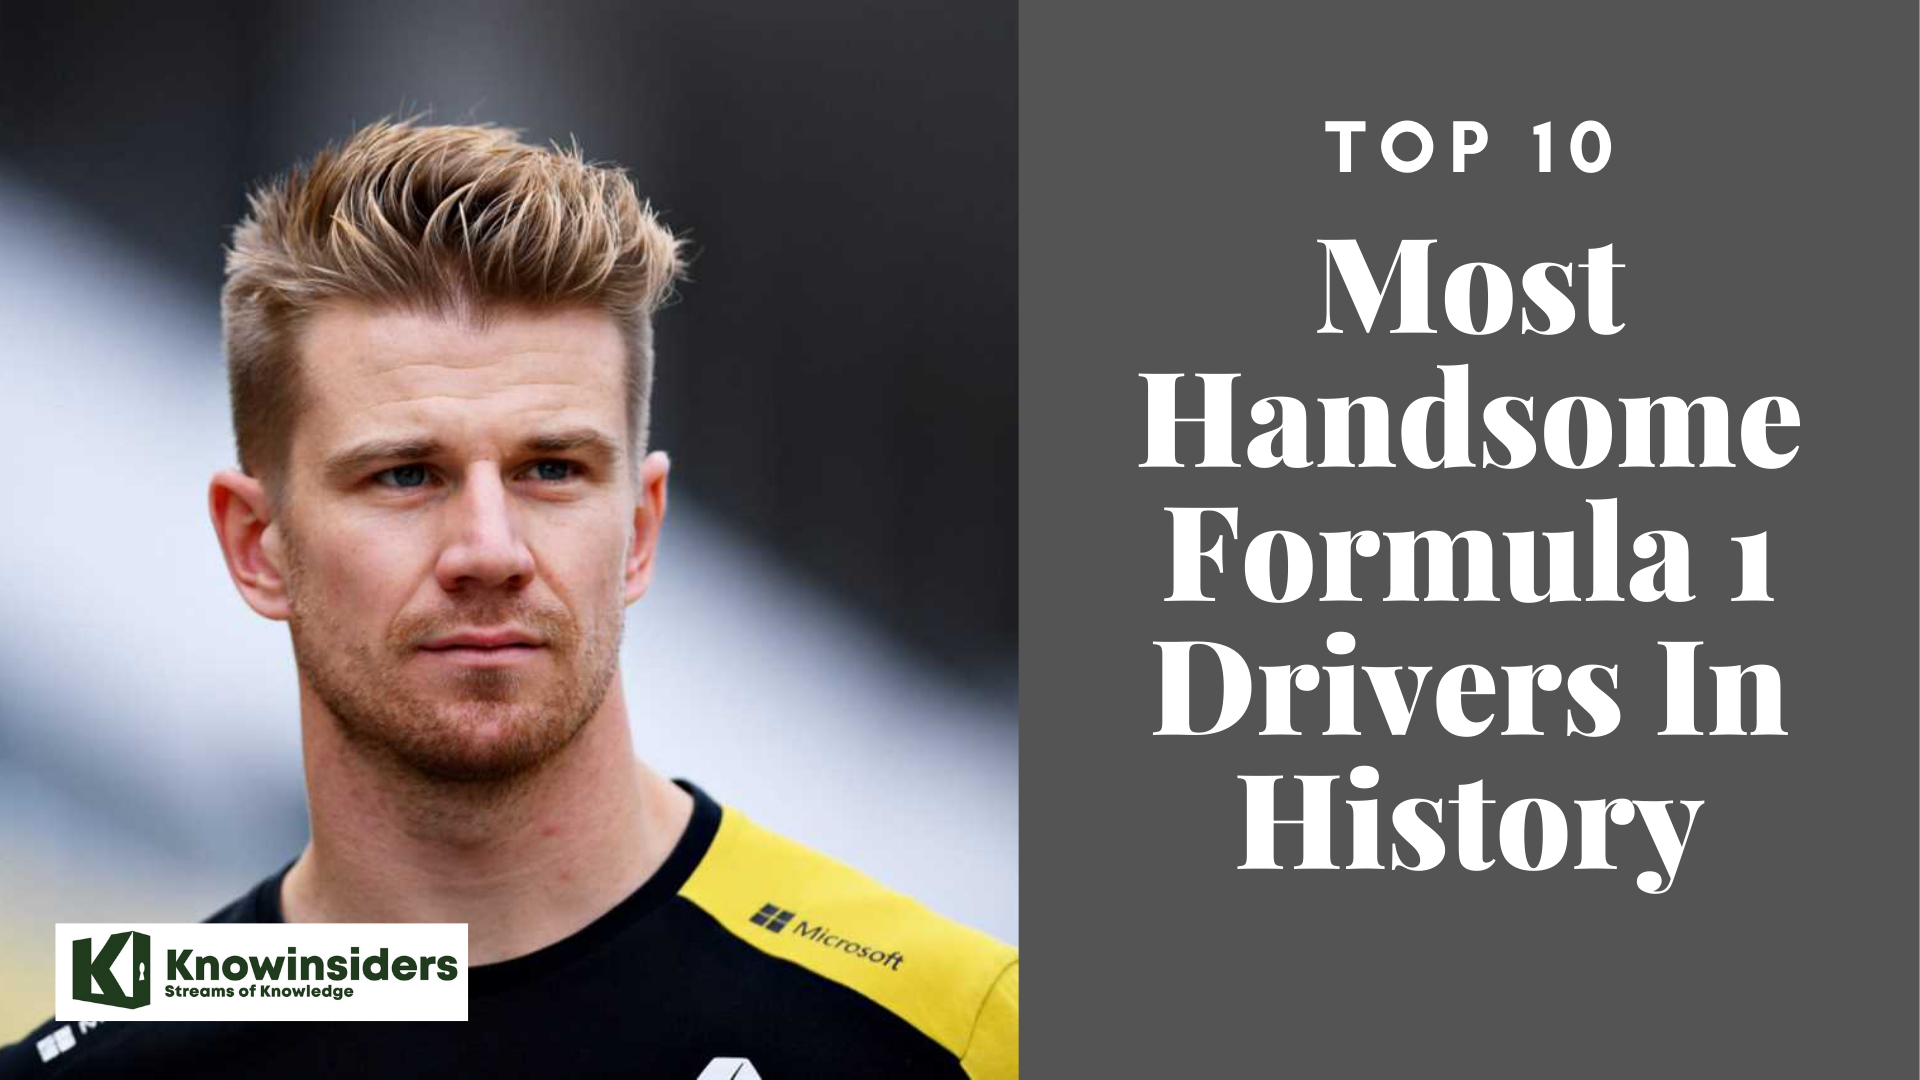 Top 10 Most Handsome Formula 1 Drivers In History